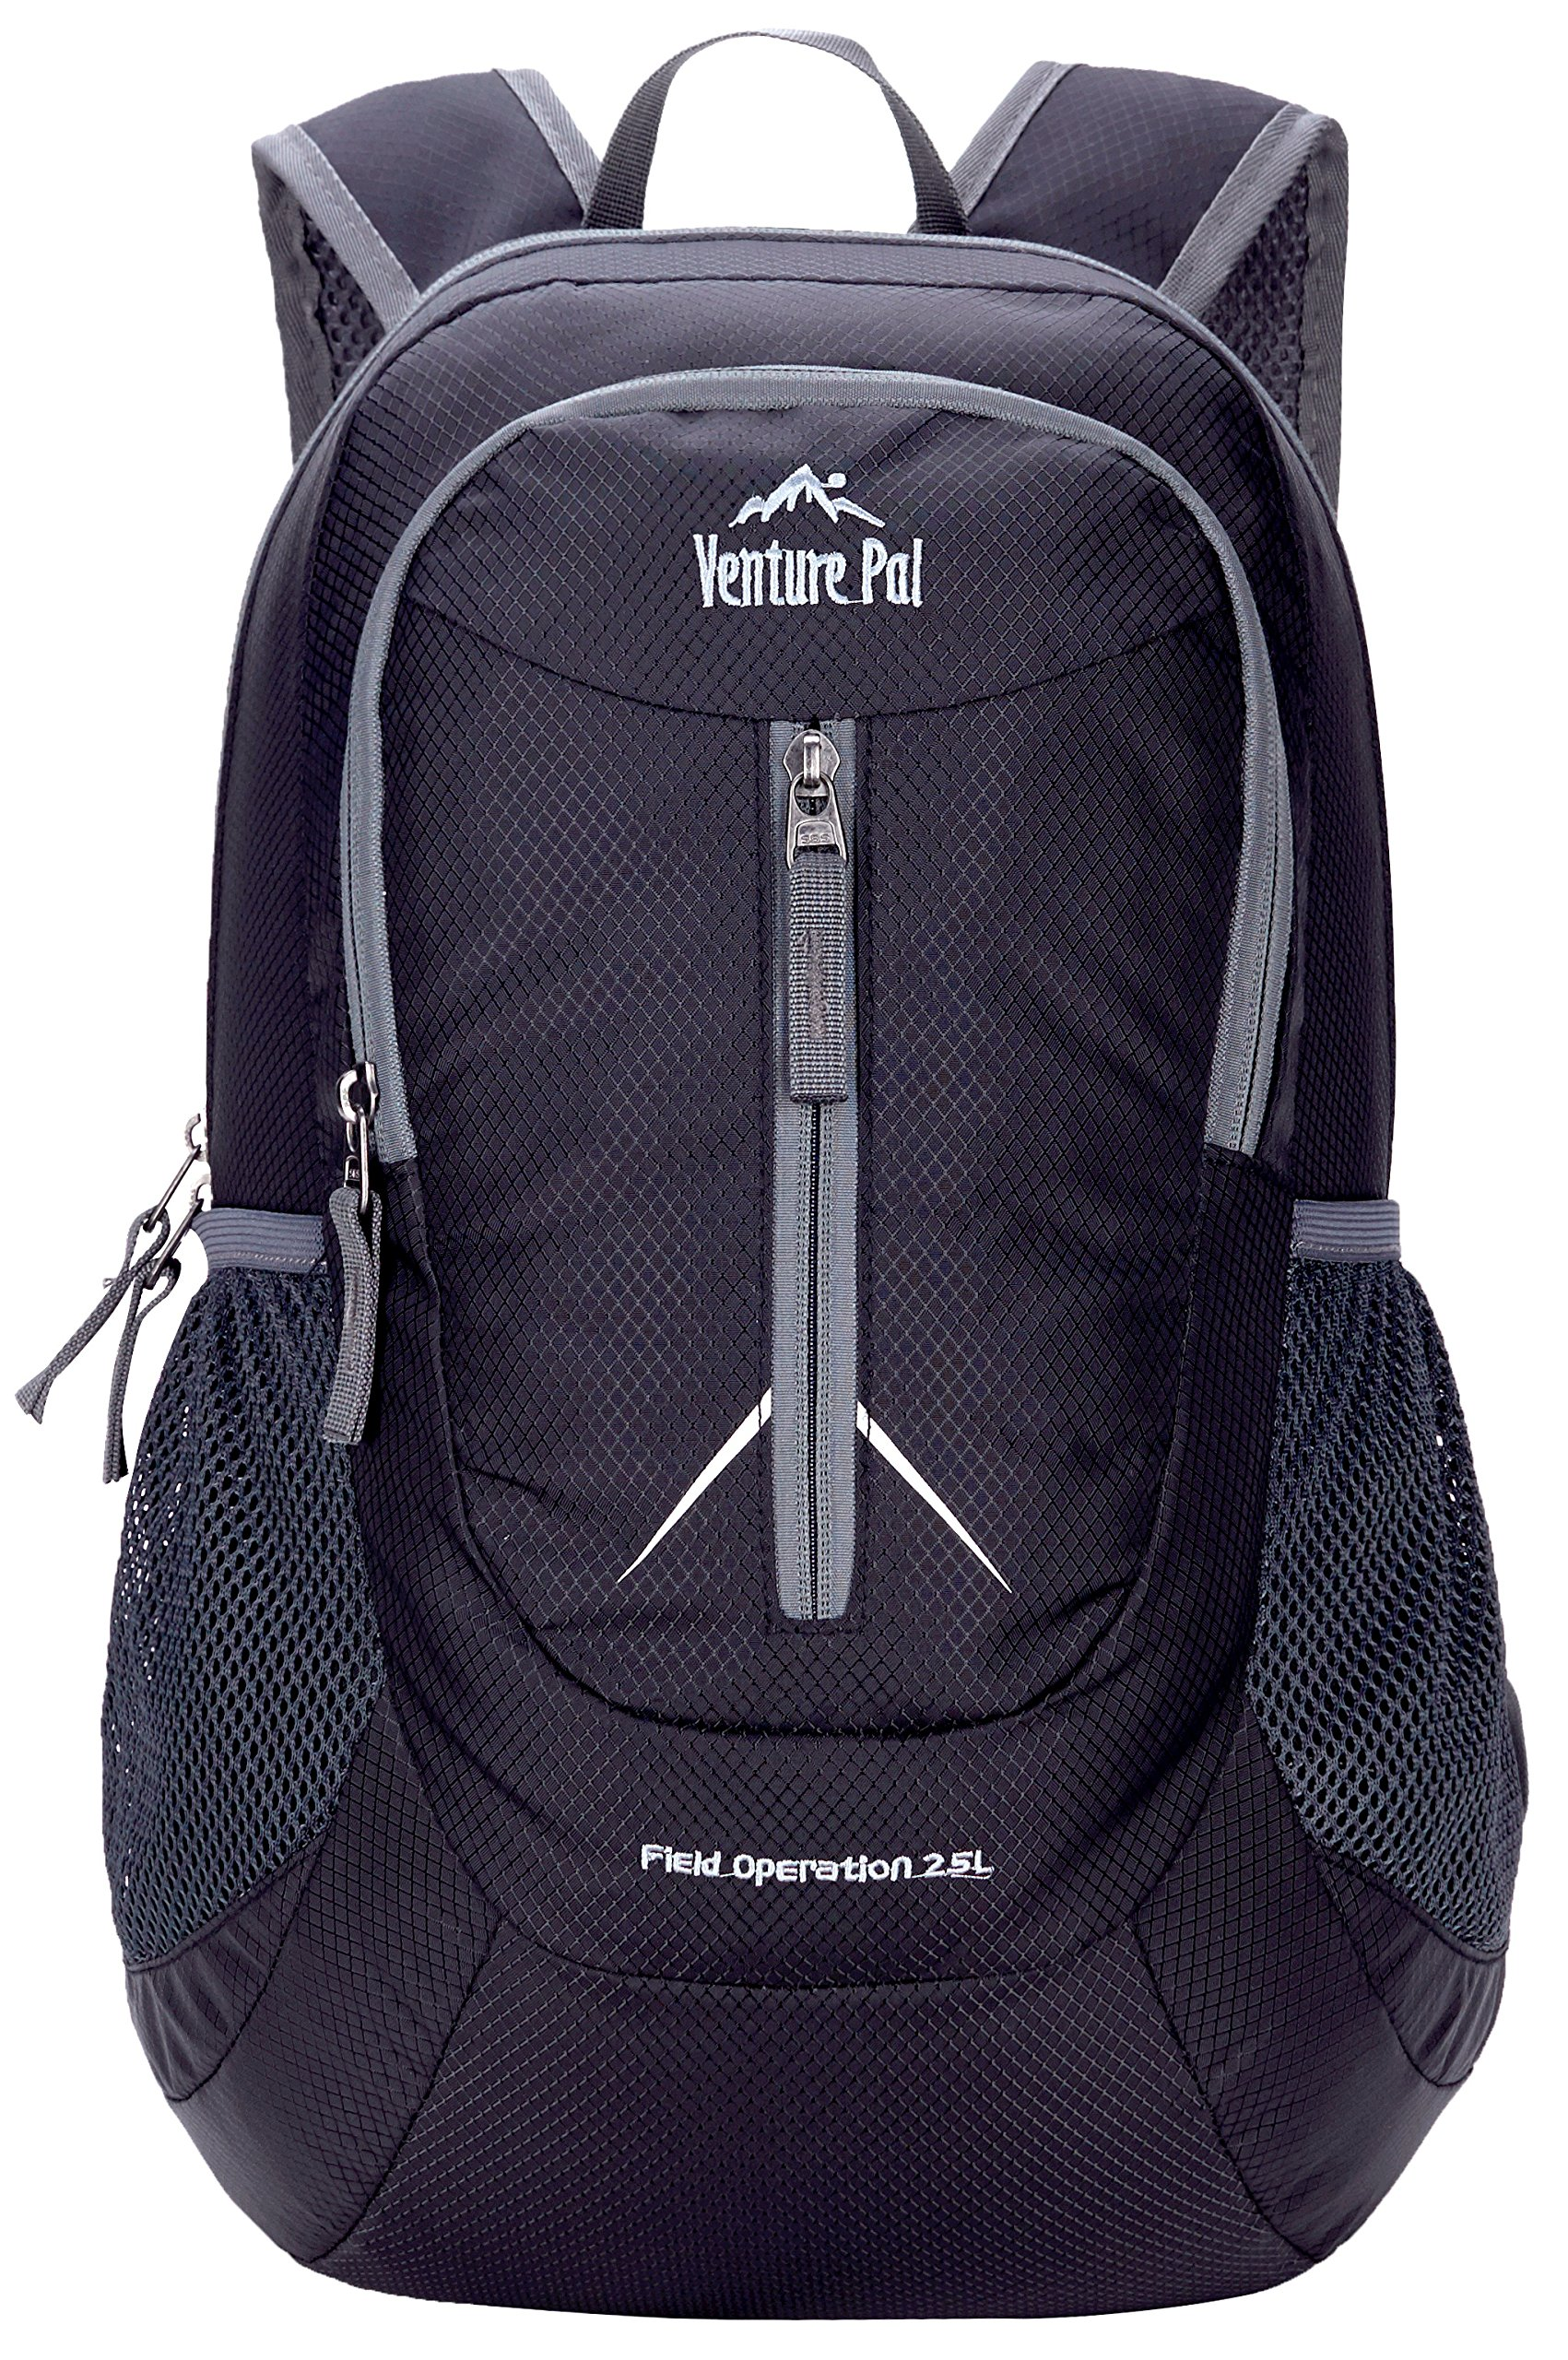 Venture Pal 25L - Durable Packable Lightweight Travel Hiking Backpack Daypack Small Bag for Men Women Kids (Black) by Venture Pal (Image #2)